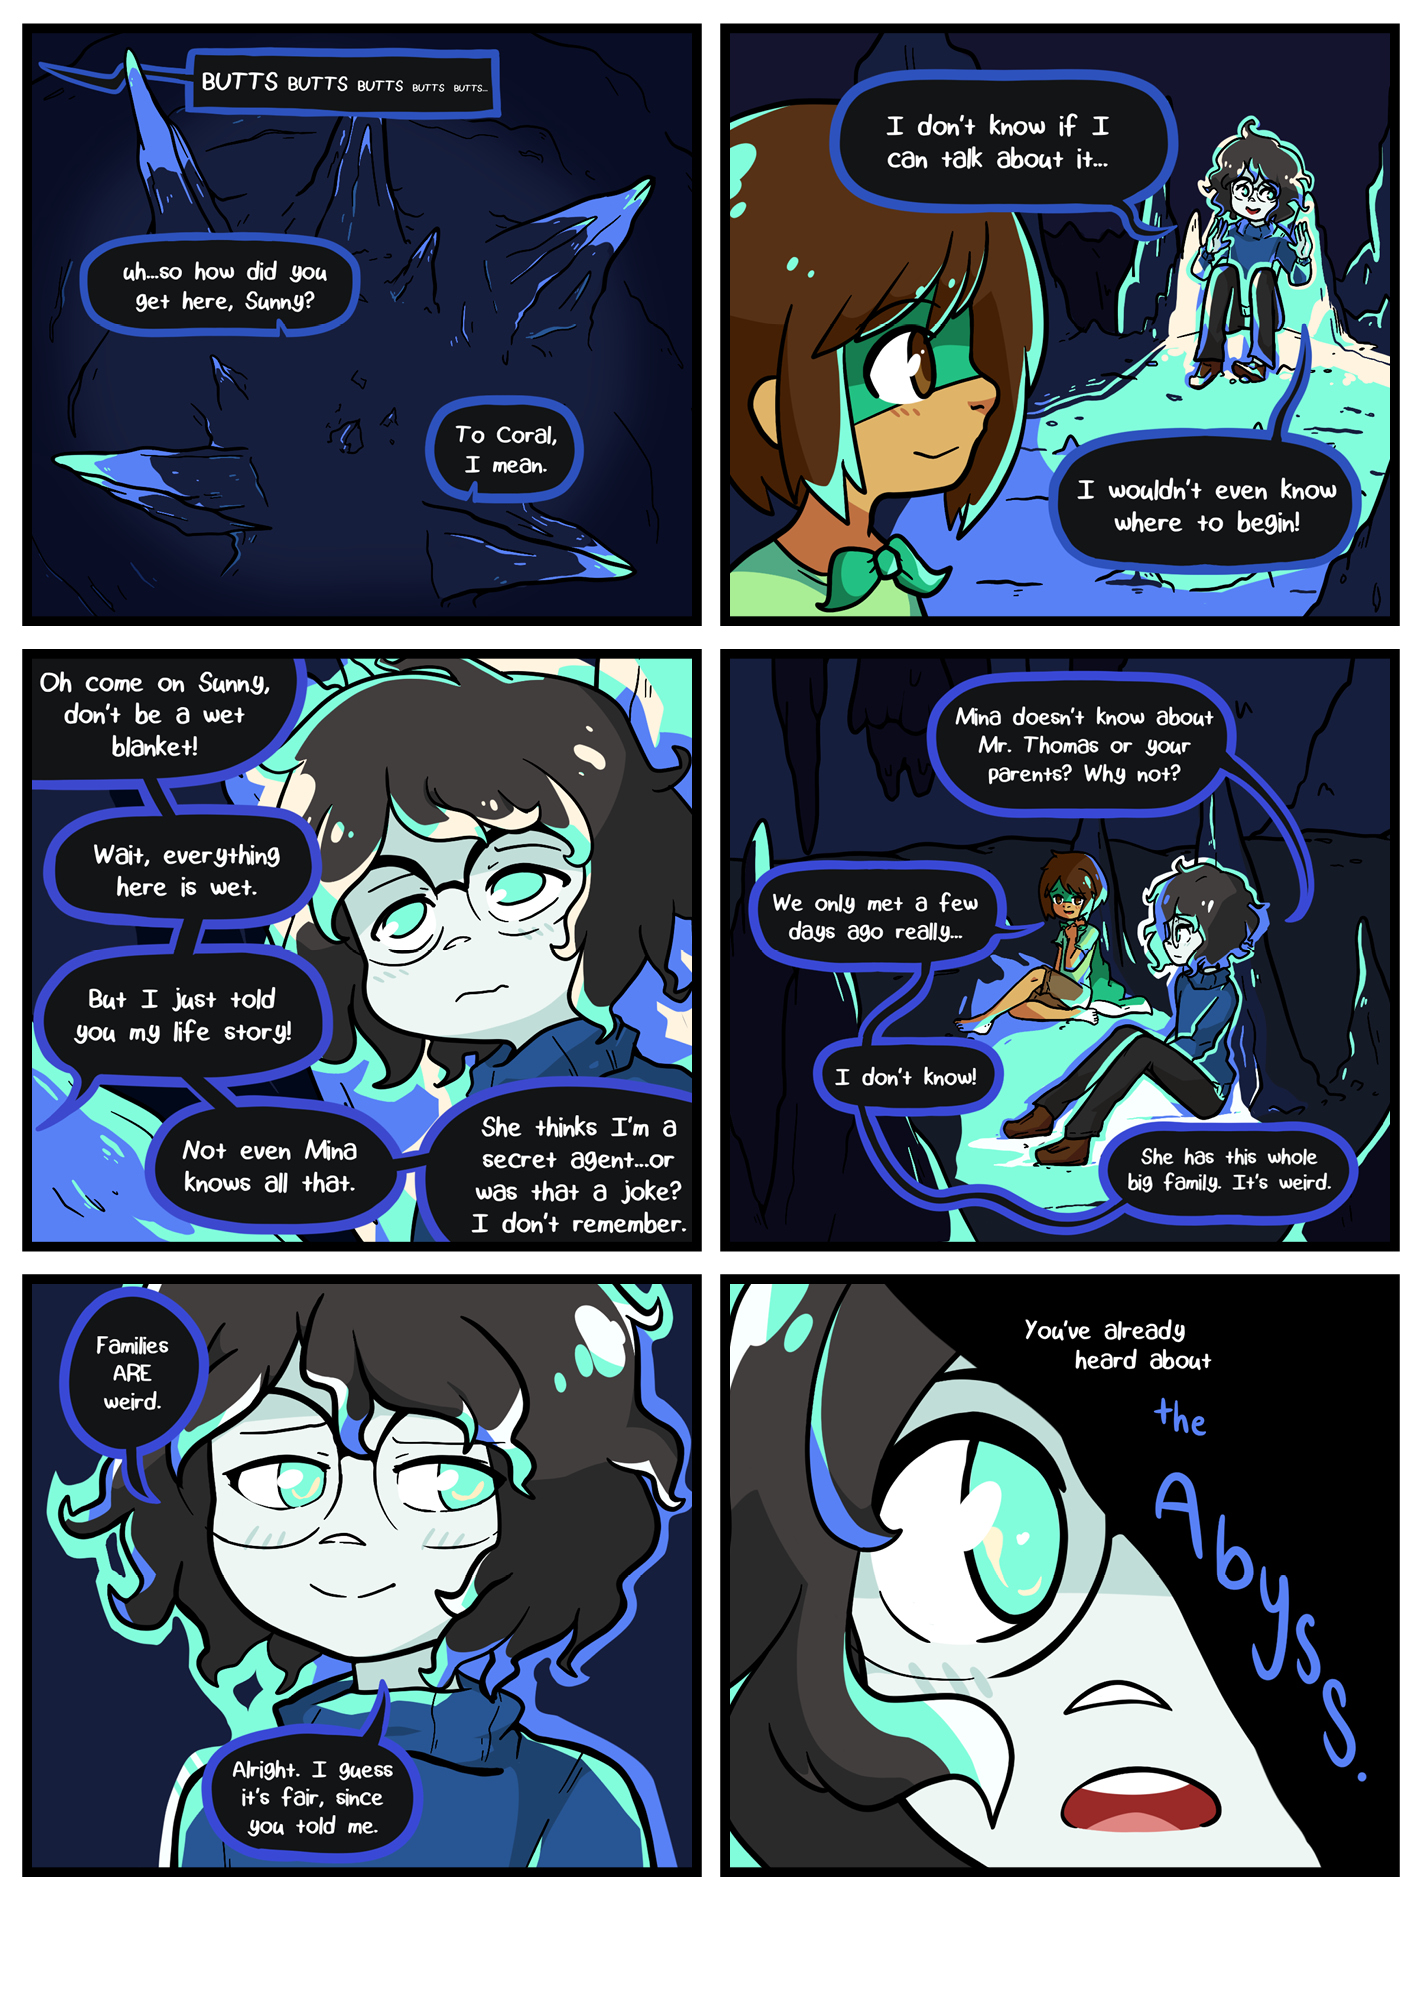 Seasick the underwater adventure comic, chapter 2 page 55 full page